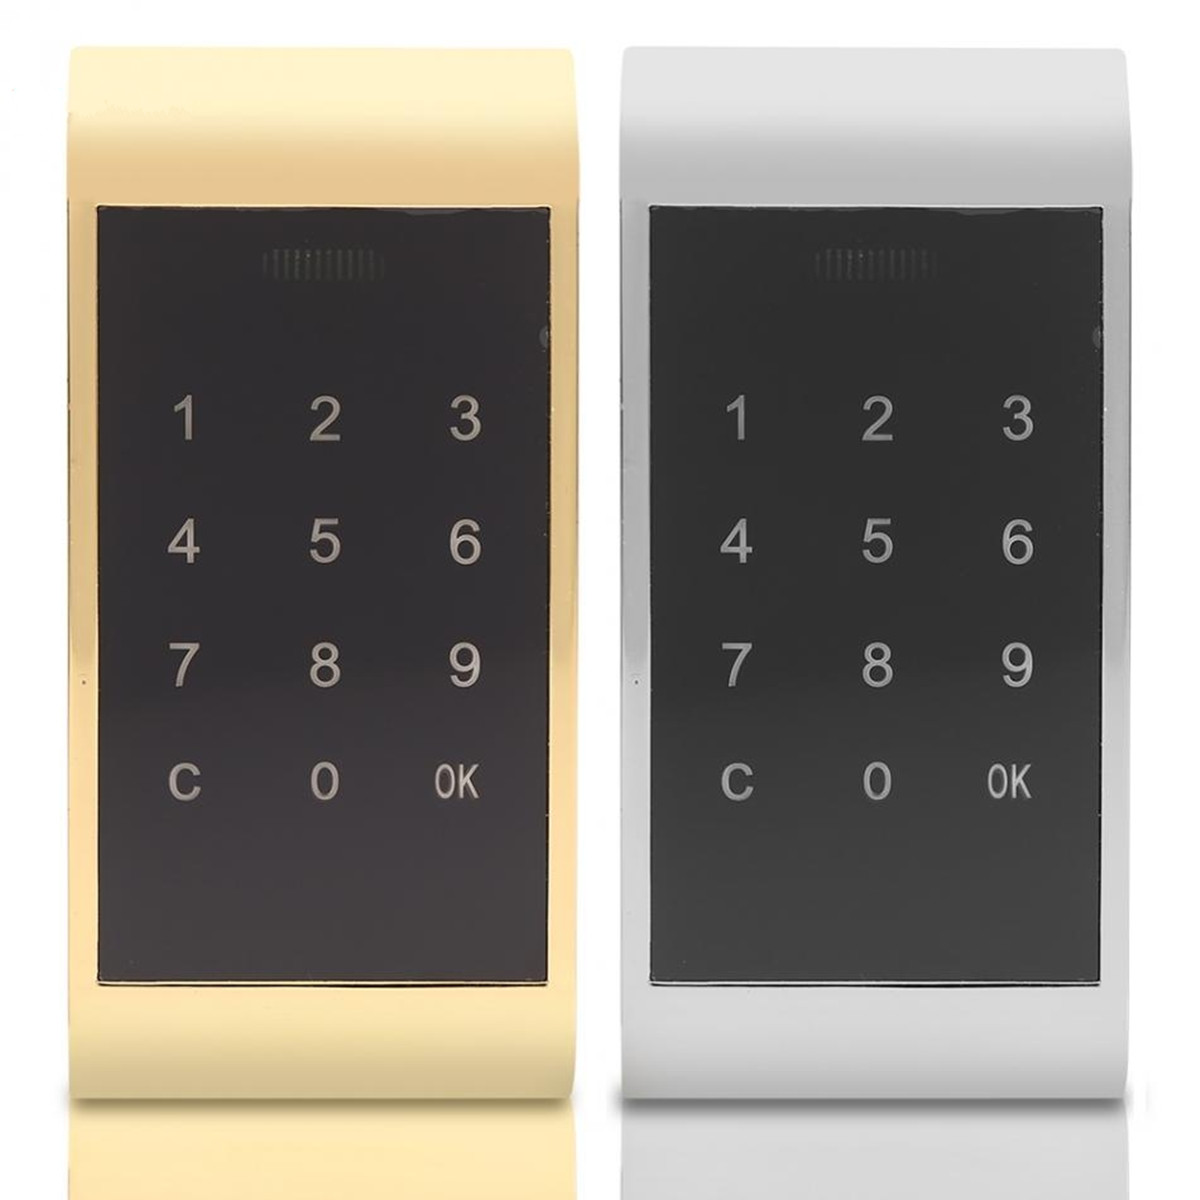 Safurance Electronic Digital Touch Keypad Password Key Access Security Cabinet Code Lock Access Control Home Security electronic password cabinet lock induction touch keypad password key lock digital electric cabinet coded locker